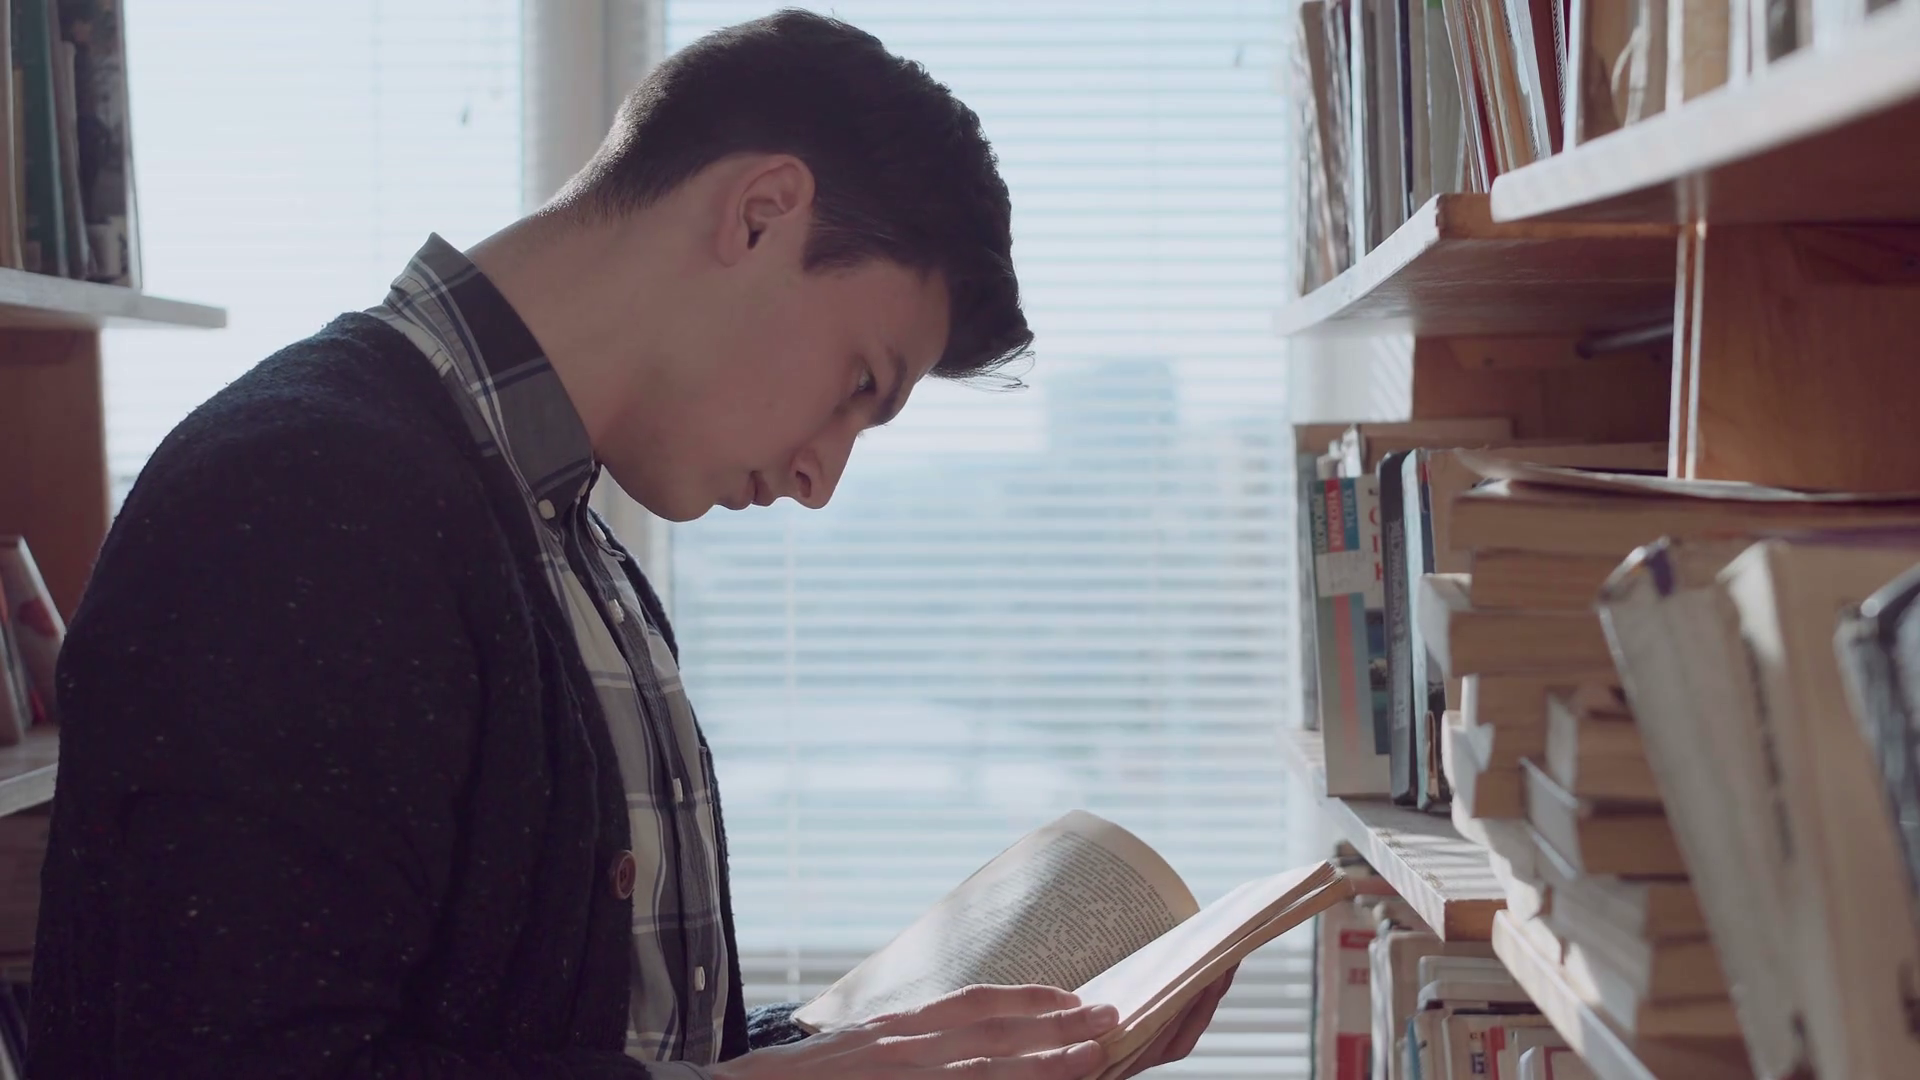 Young caucasian man standing at bookshelf in library